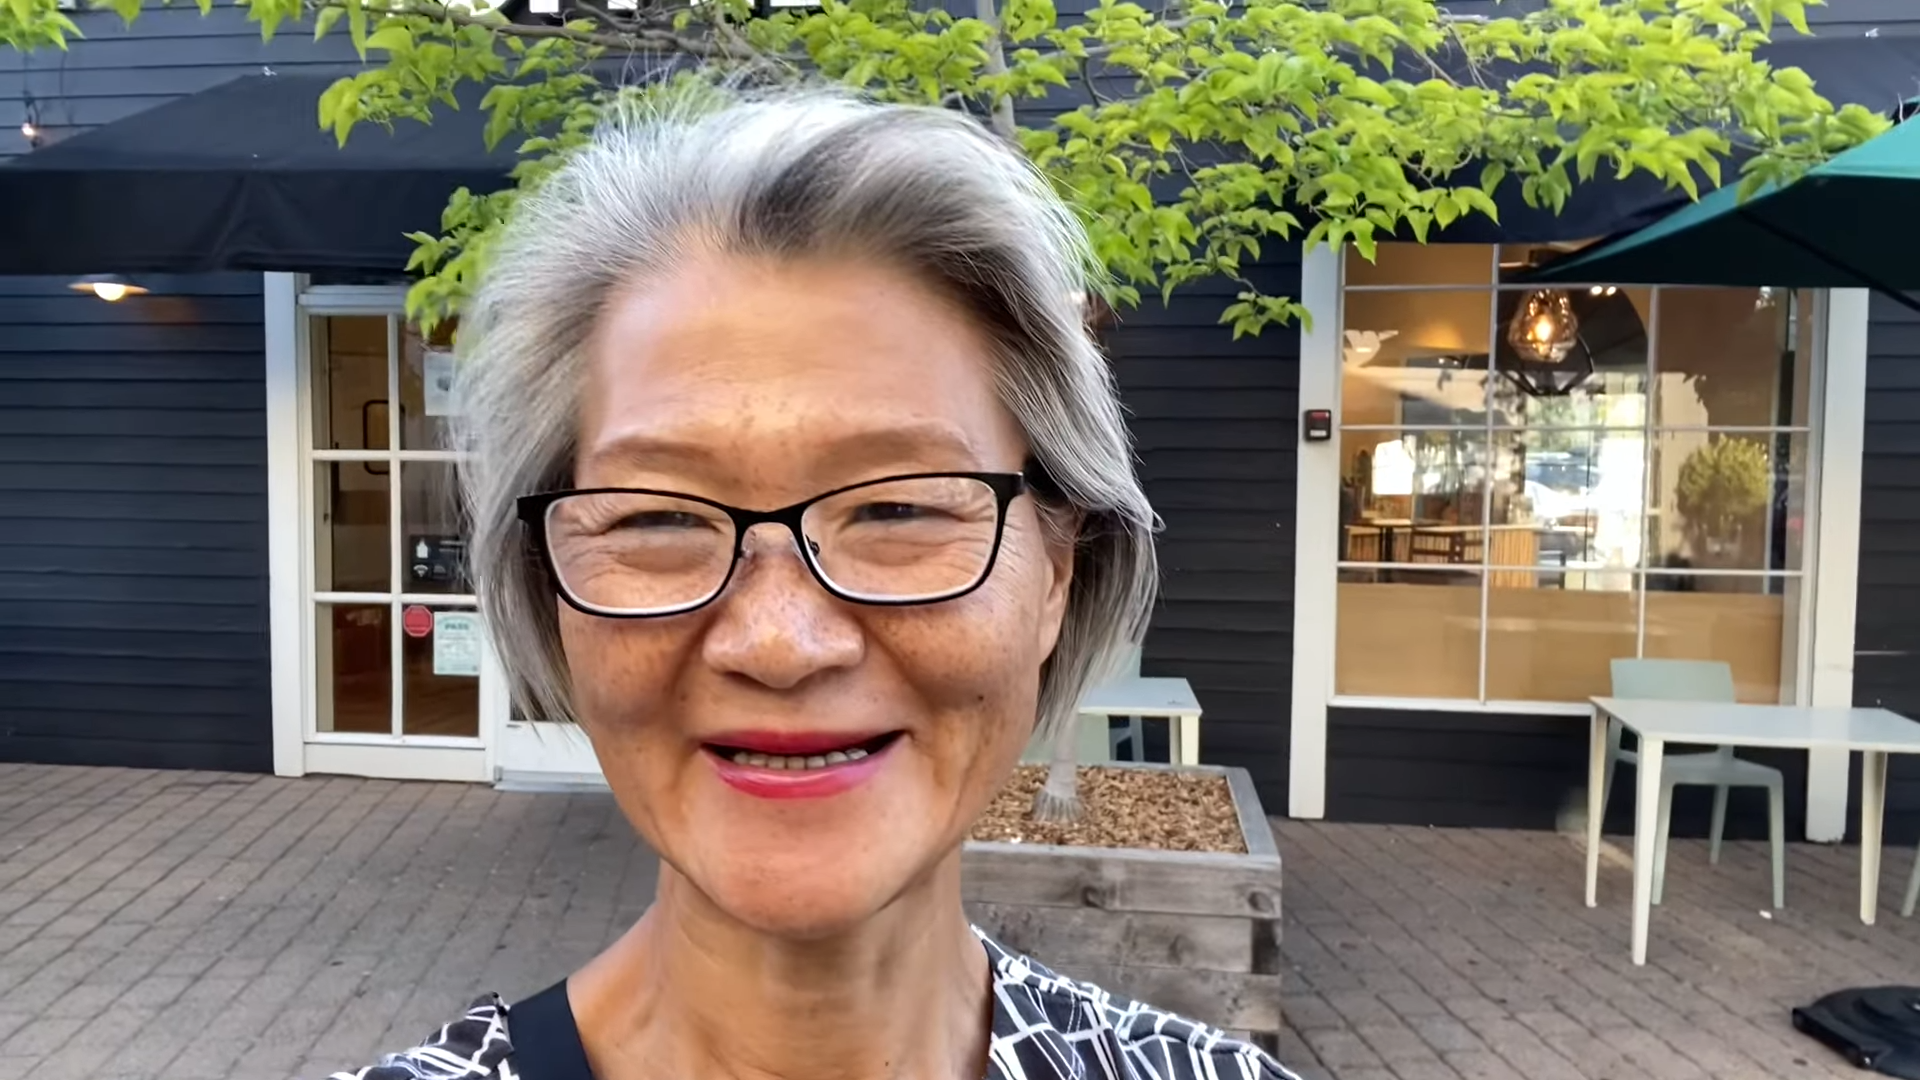 woman wearing glasses standing in front of a building and smiling